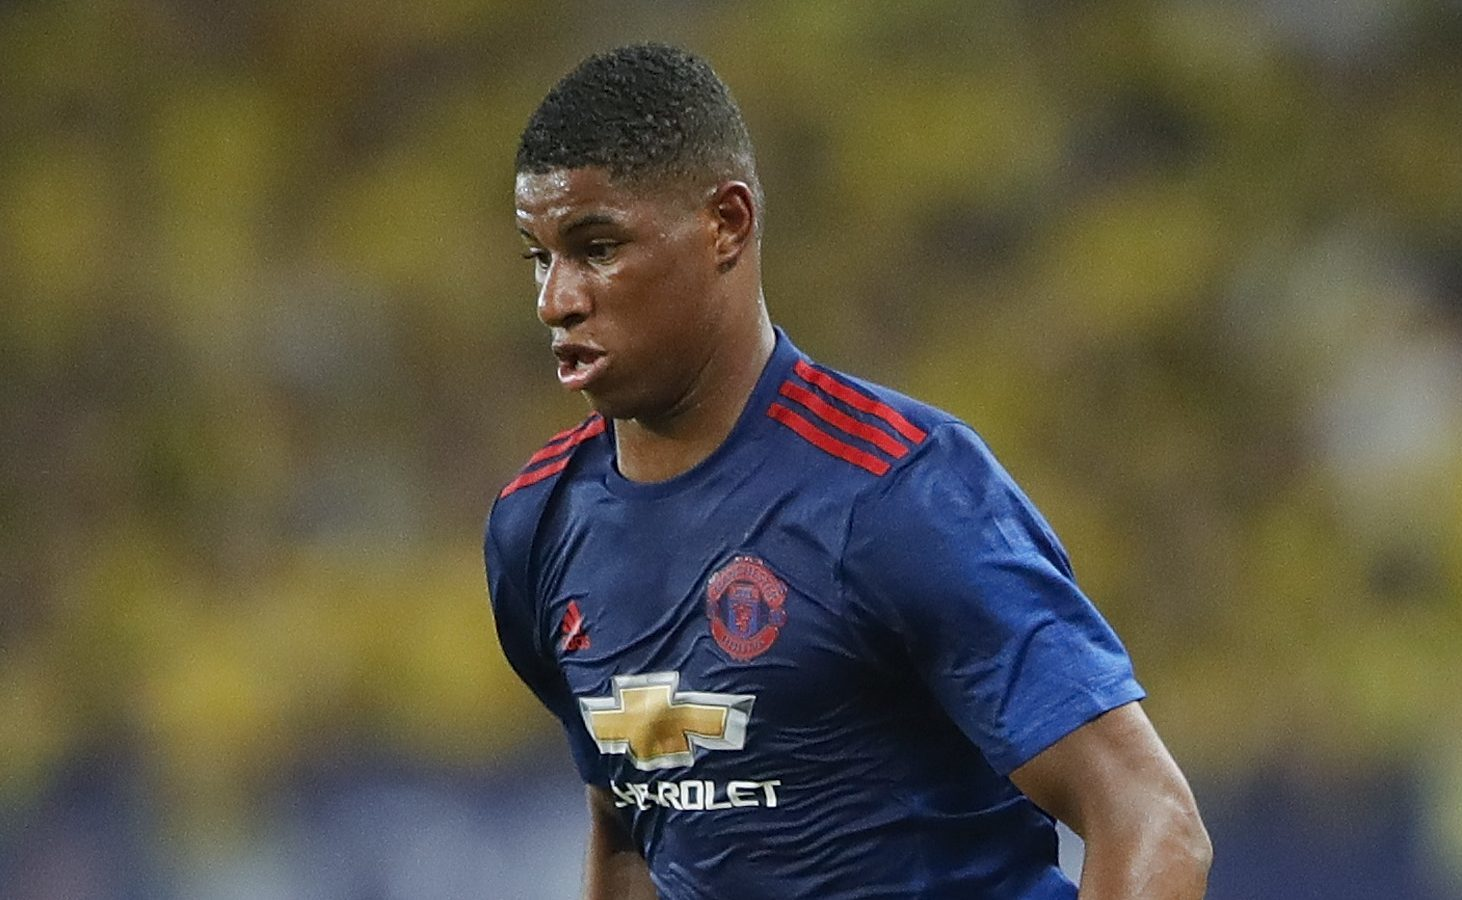 Marcus Rashford of Manchester United (Lintao Zhang/Getty Images)